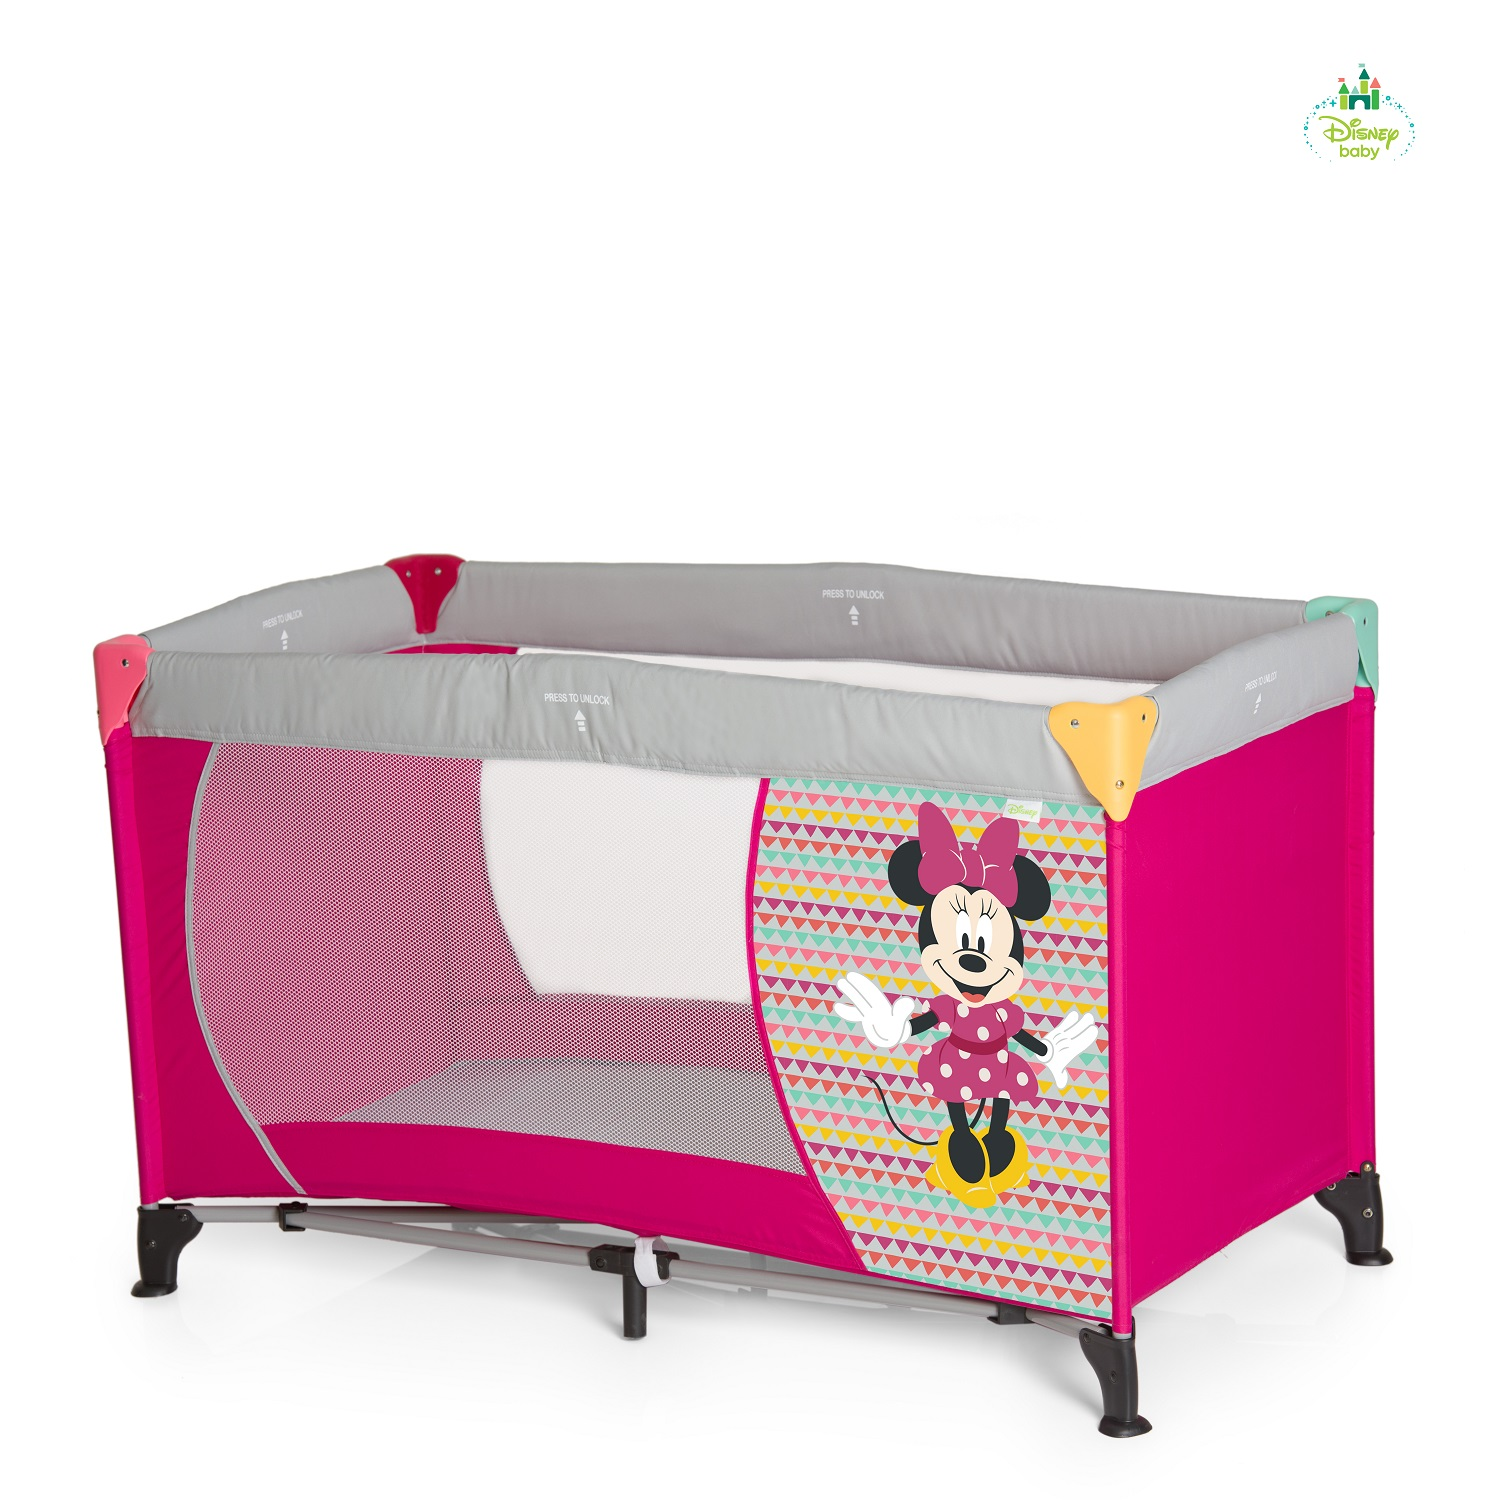 lit parapluie disney dream n play mickey minnie acheter sur kidsroom b b s la maison. Black Bedroom Furniture Sets. Home Design Ideas